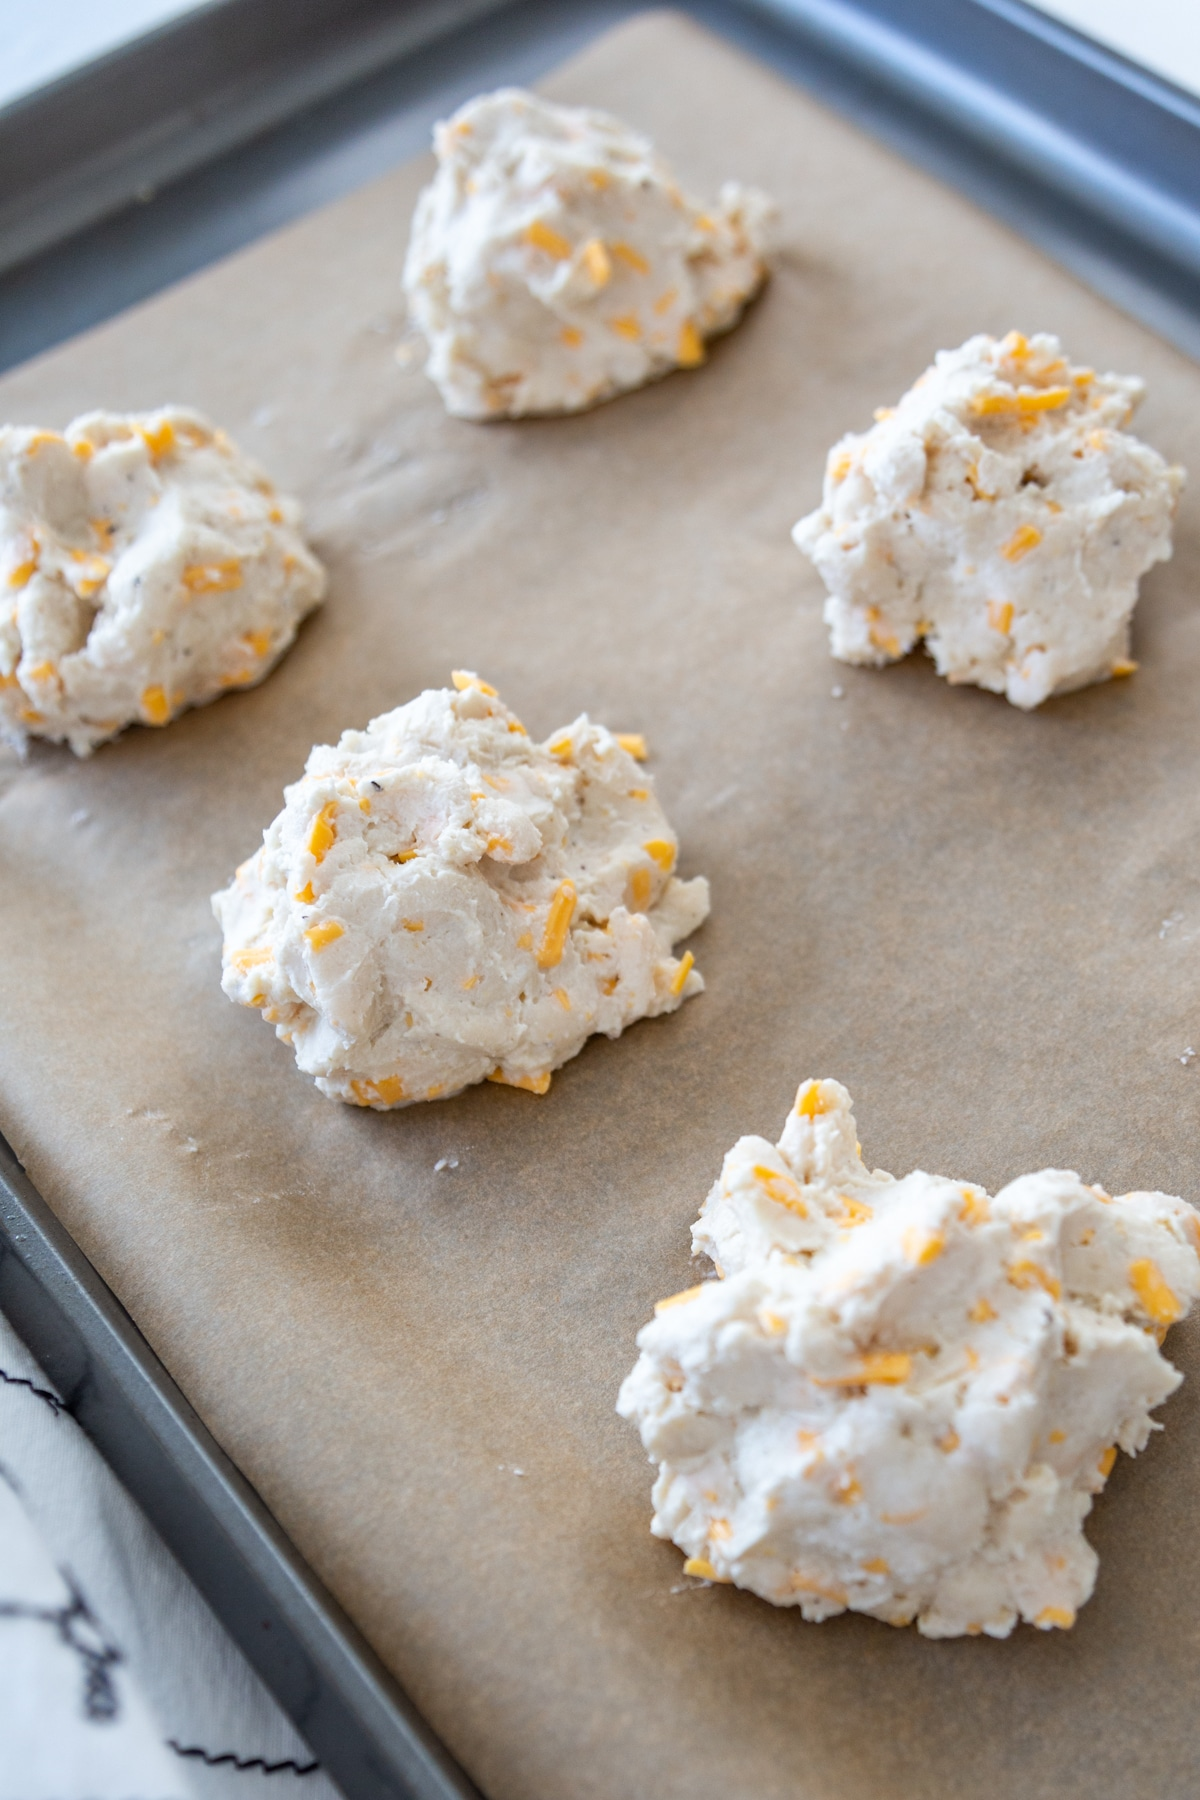 Unbaked cheddar drop biscuits on a parchment lined baking sheet.